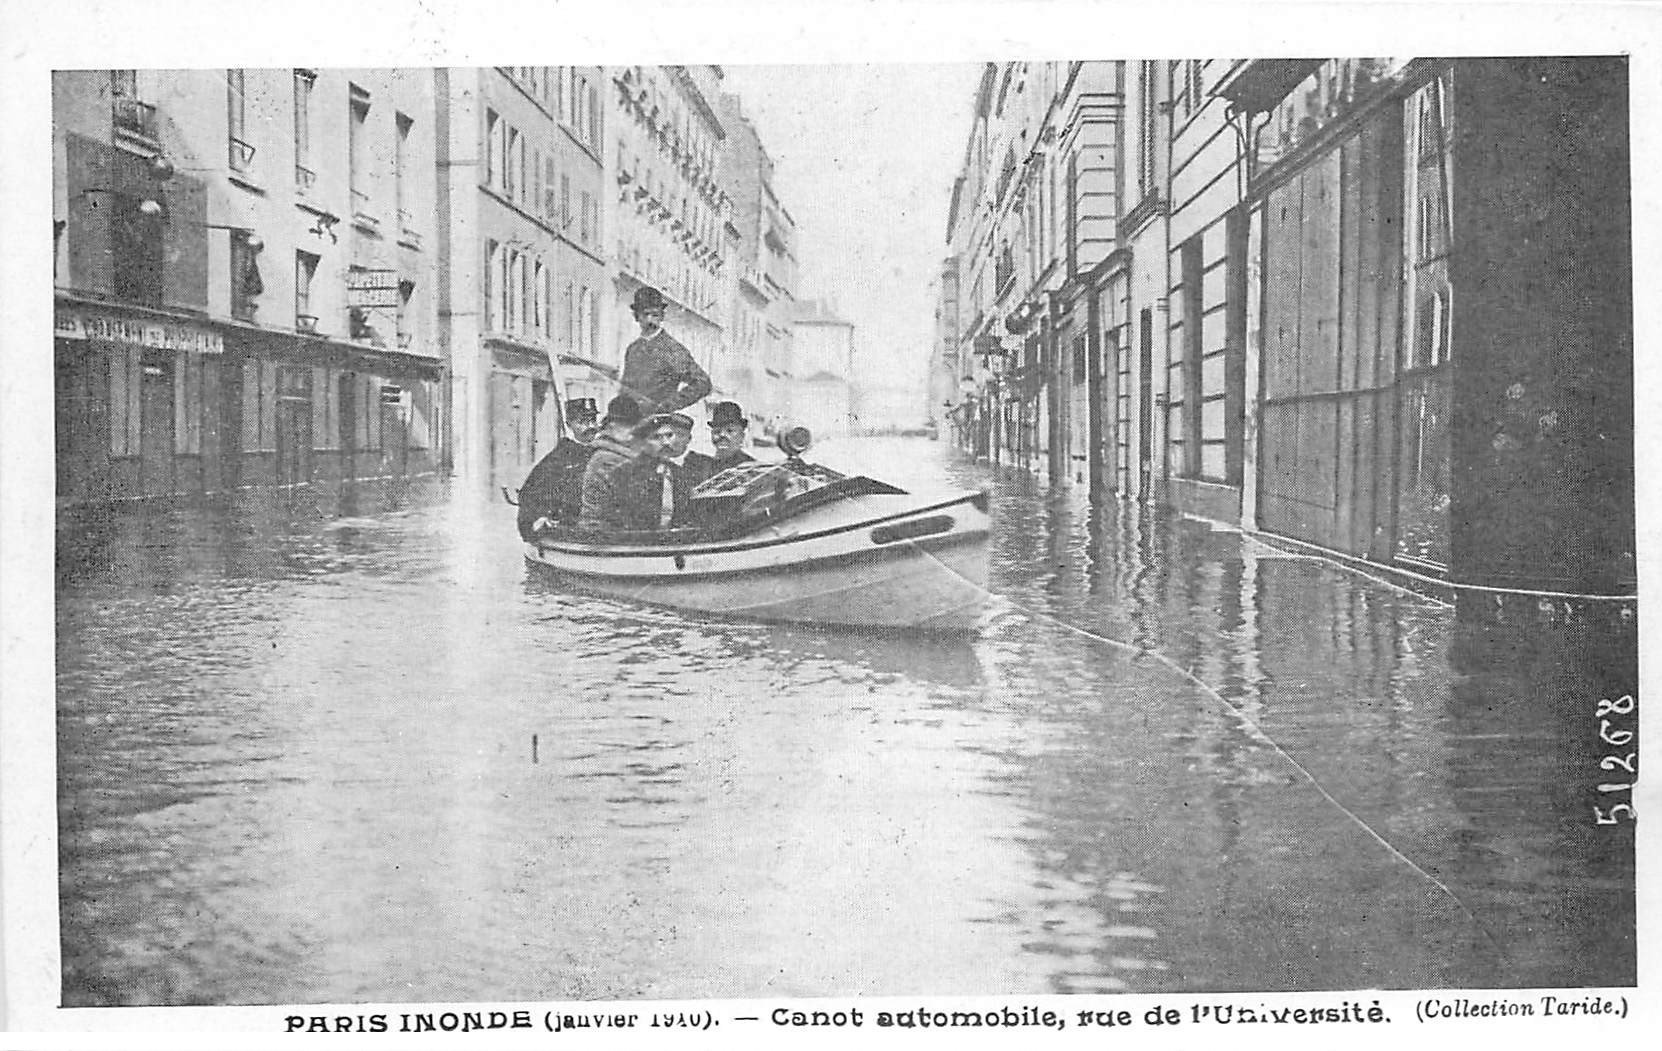 carte postale ancienne INONDATION ET CRUE DE PARIS 1910. Rue Université Canot automobile. Collection Taride